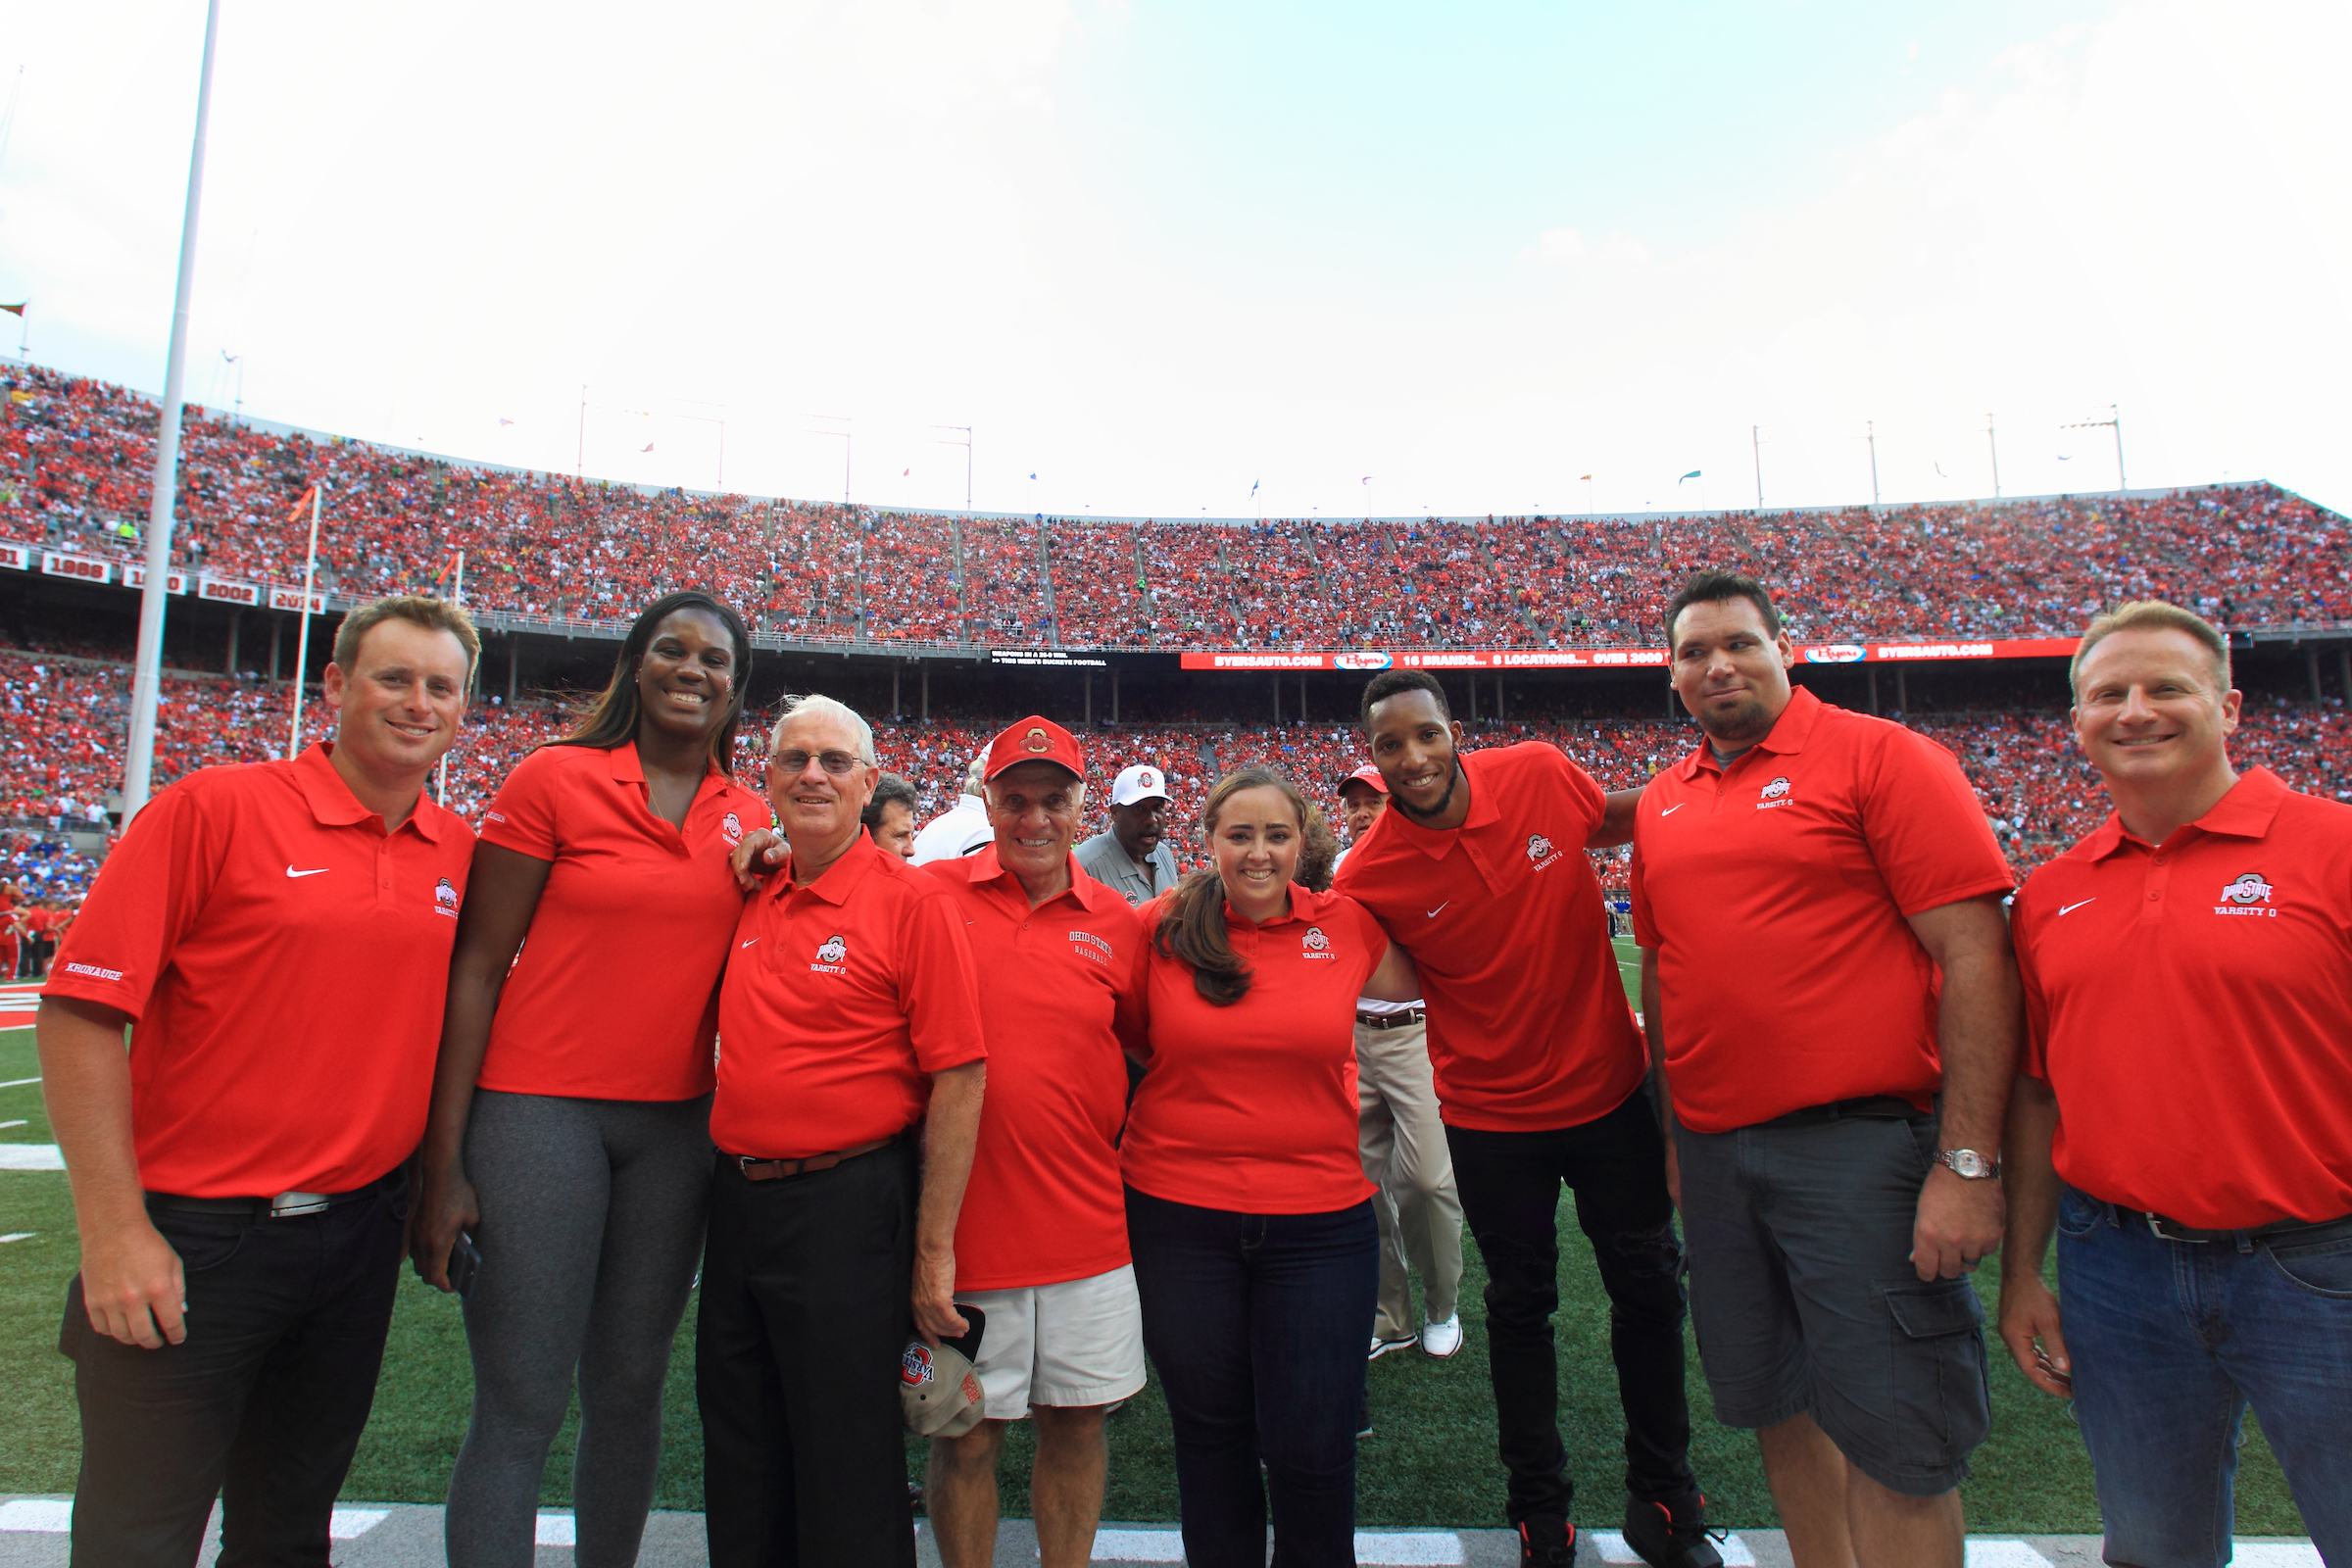 John Machado was inducted into the Ohio State Athletics Hall of Fame Friday, Sept. 9, 2016 at the Ohio Union.